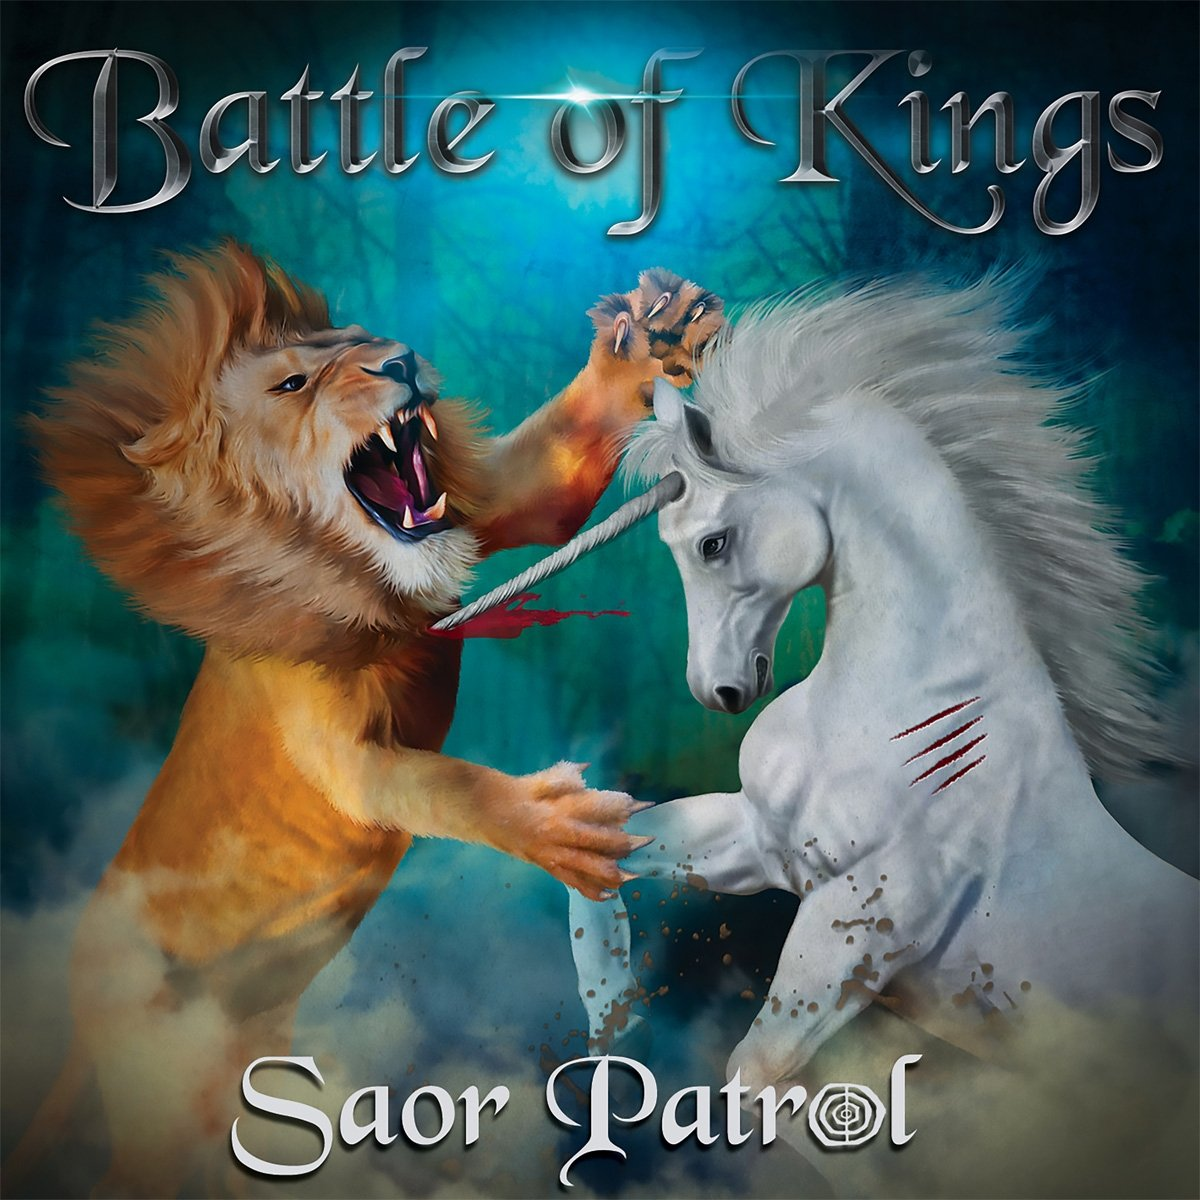 Saor Patrol - Battle of Kings - Amazon.com Music